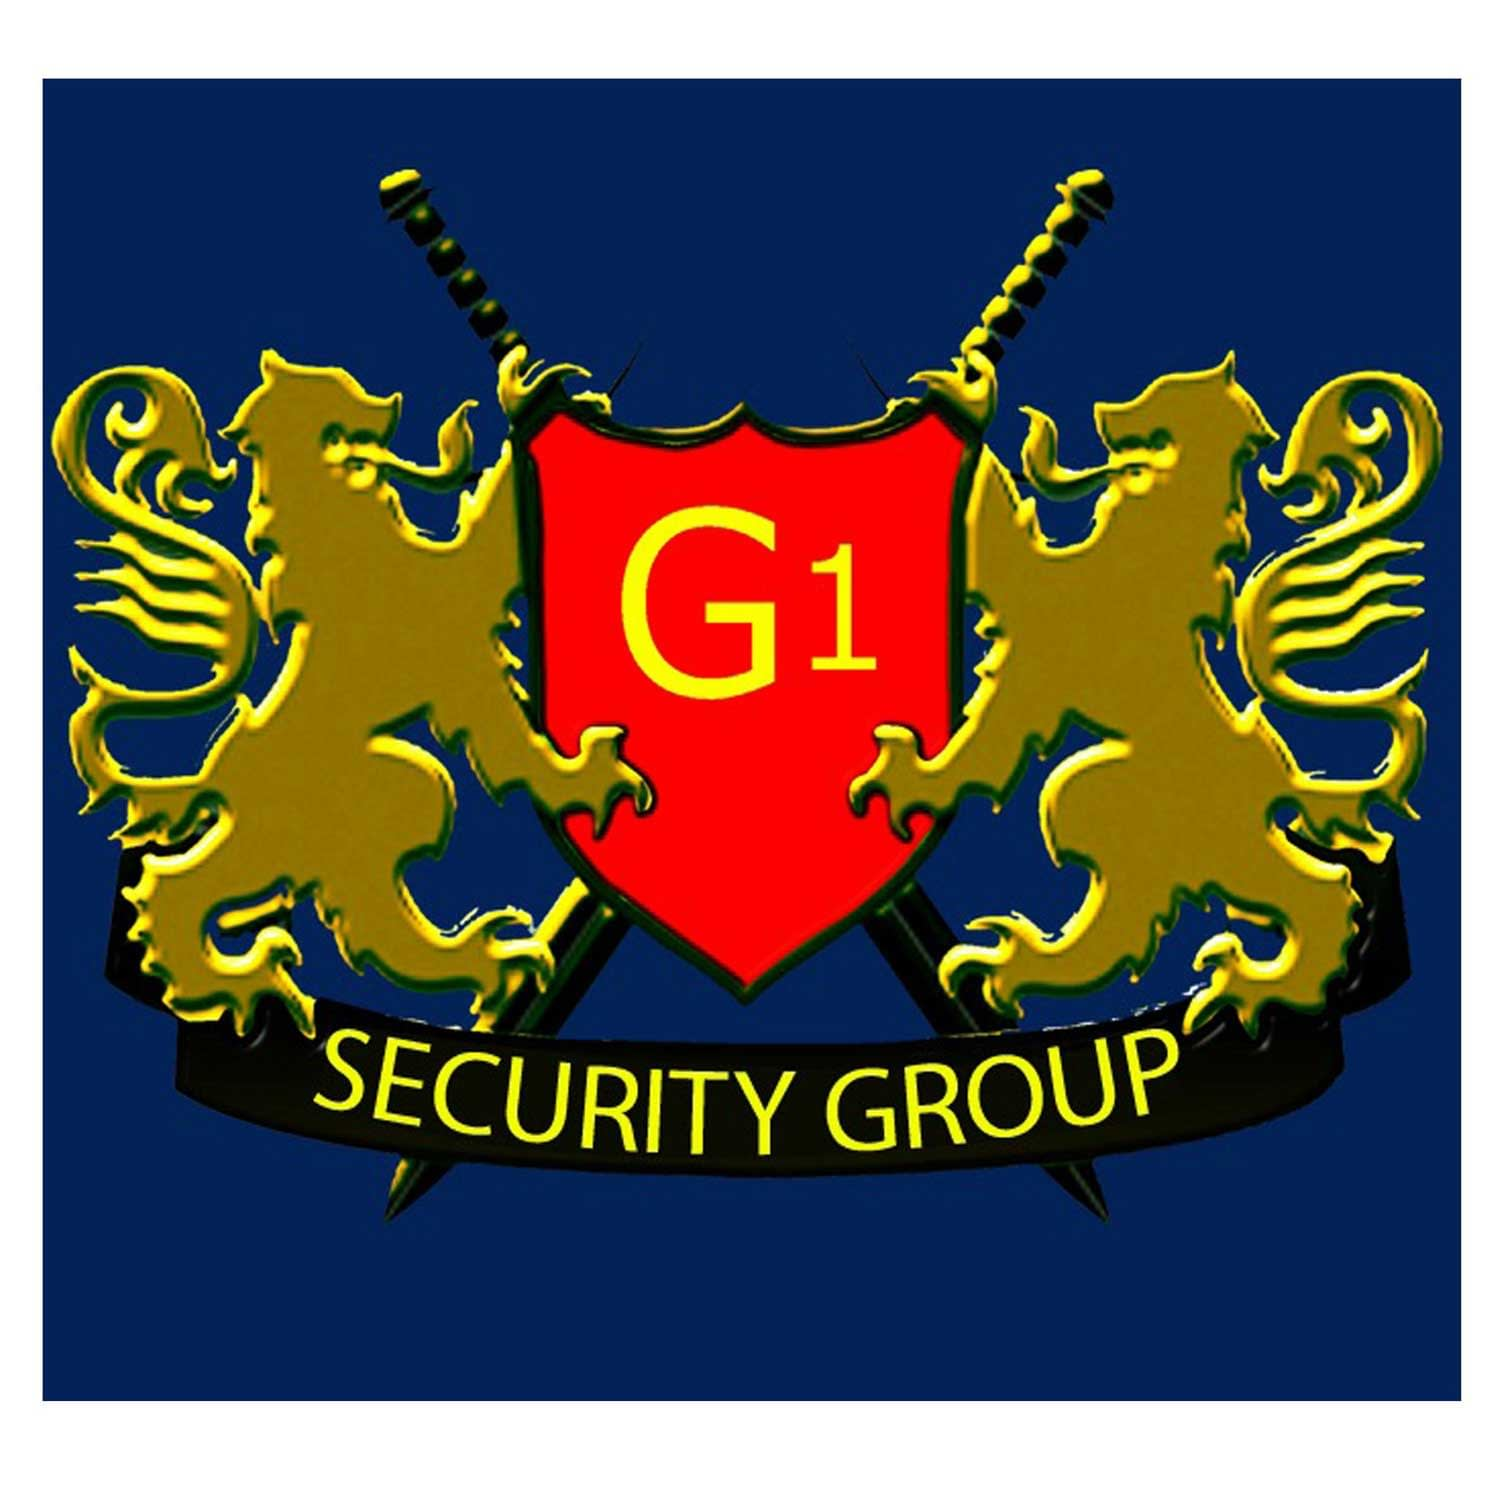 G1 Security Group